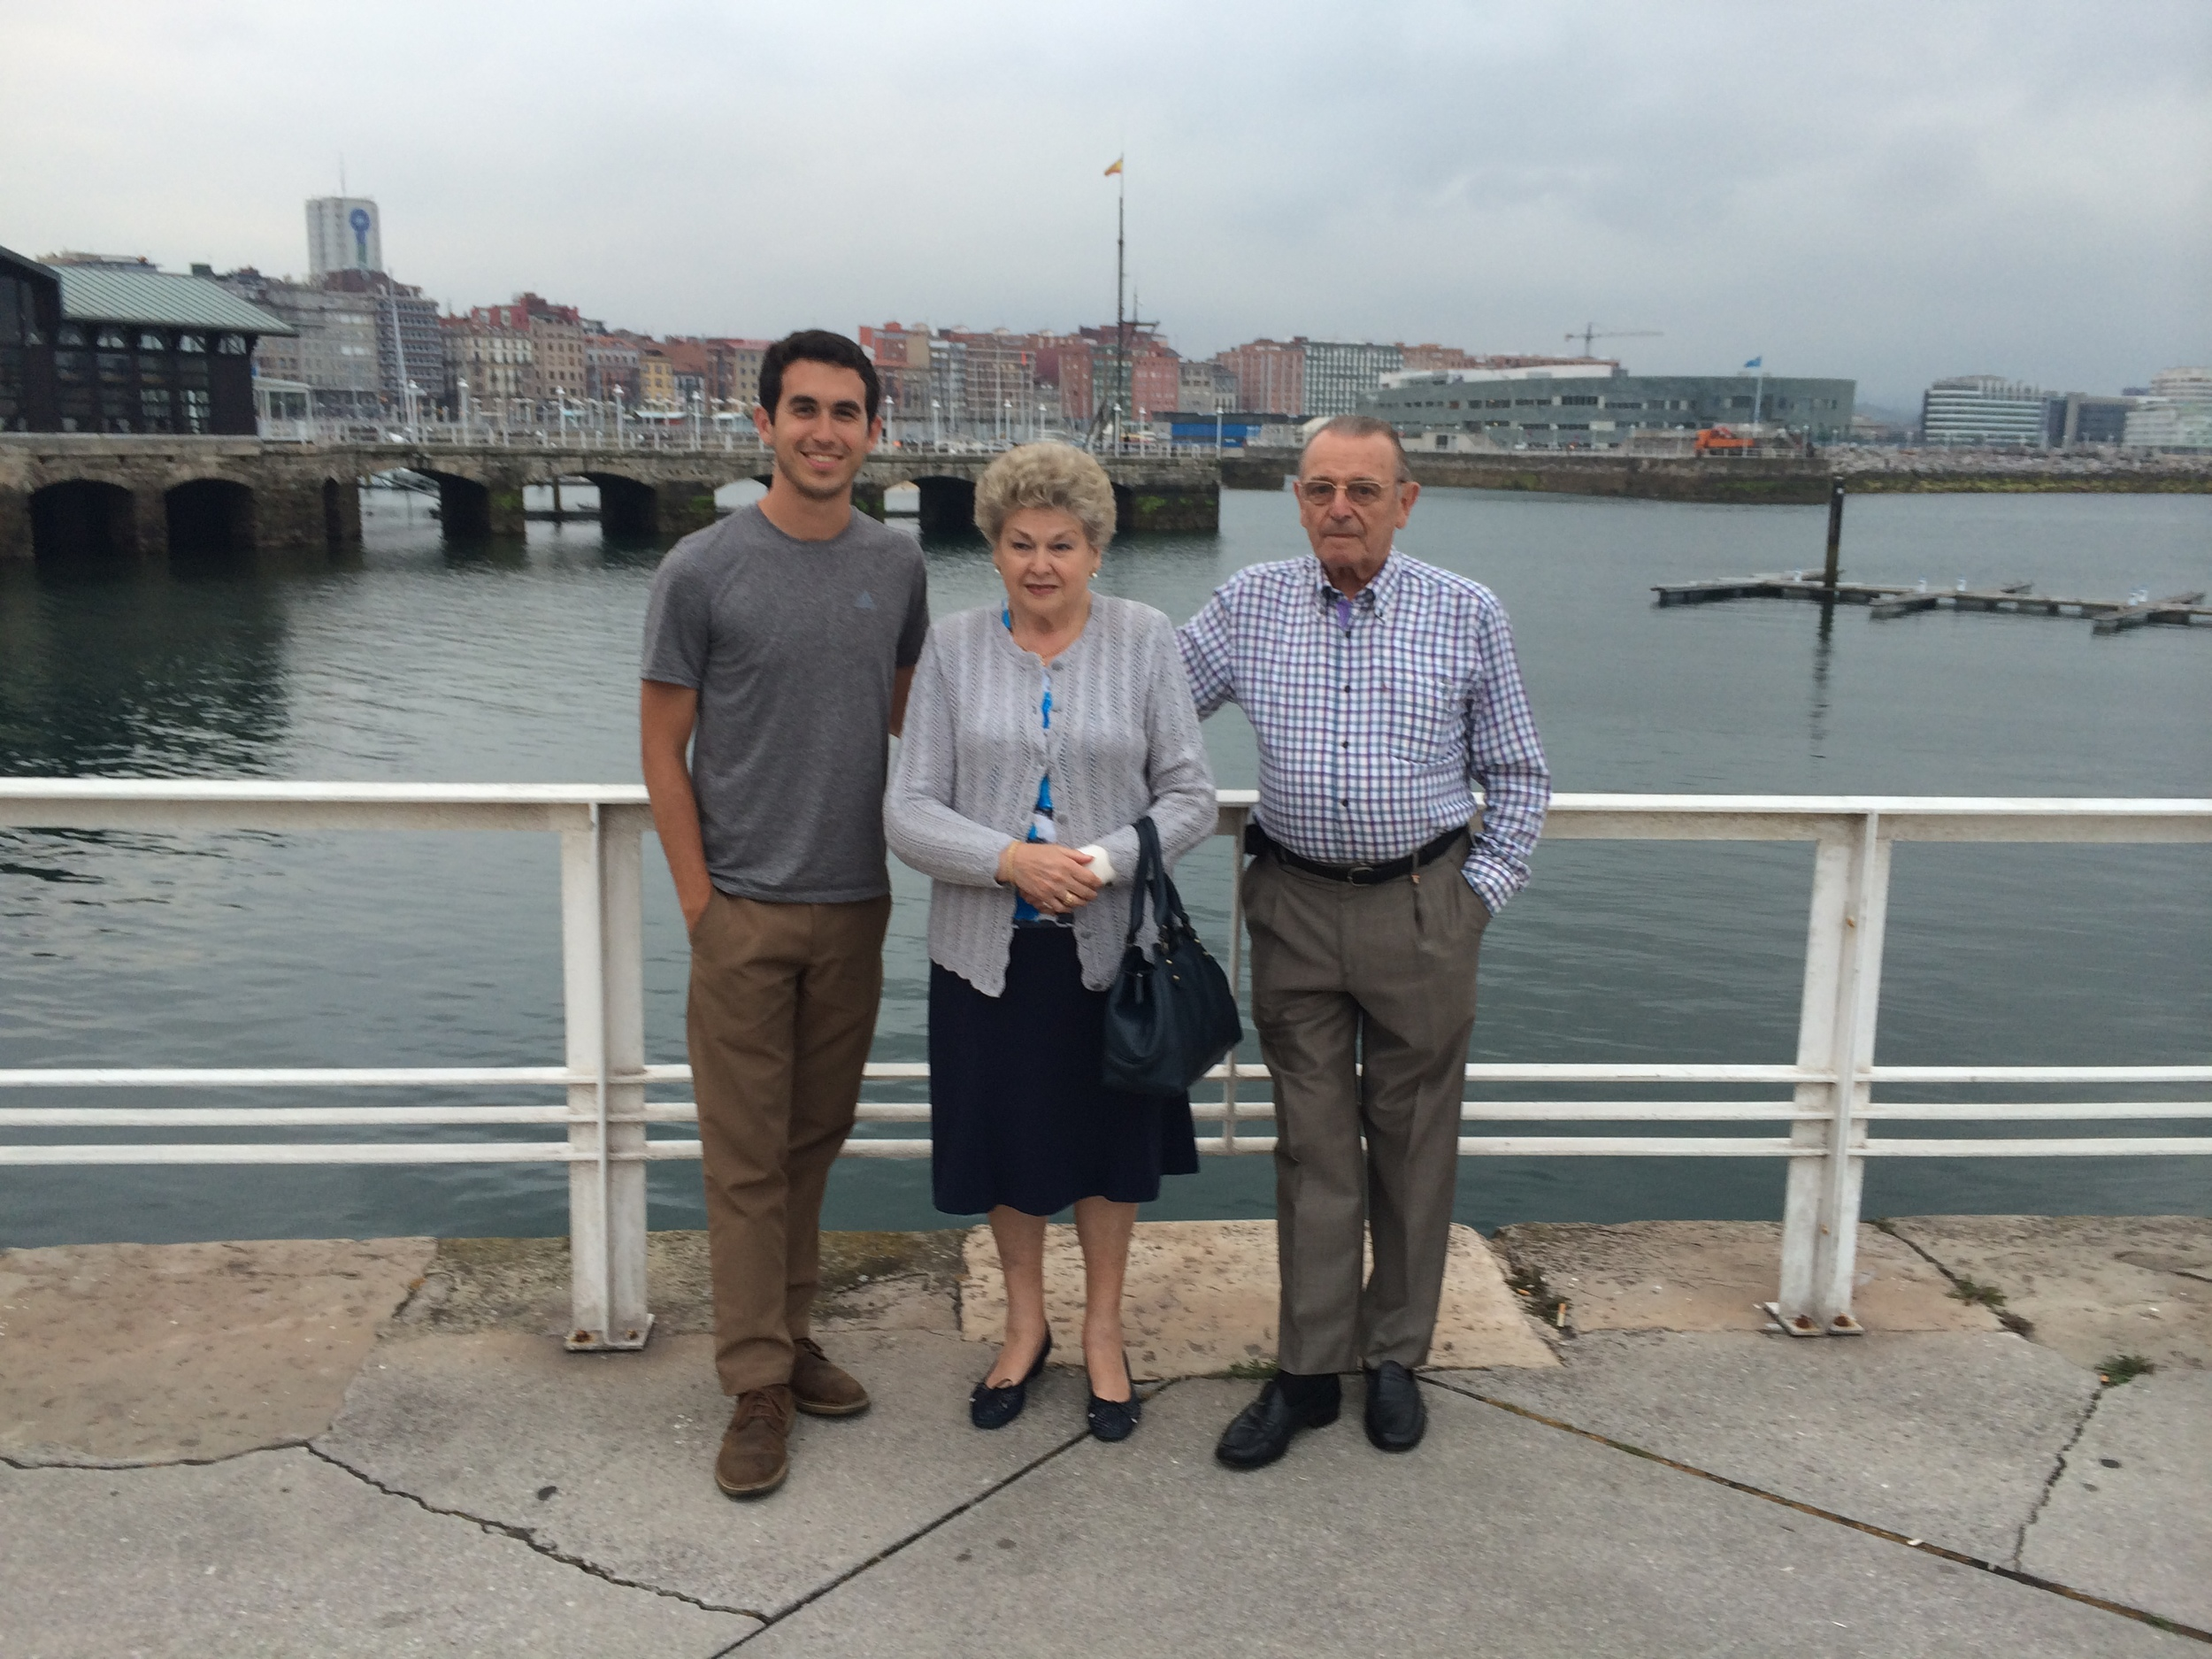 Picture of Pepin, Carmen, me next to the old port in Gijon.